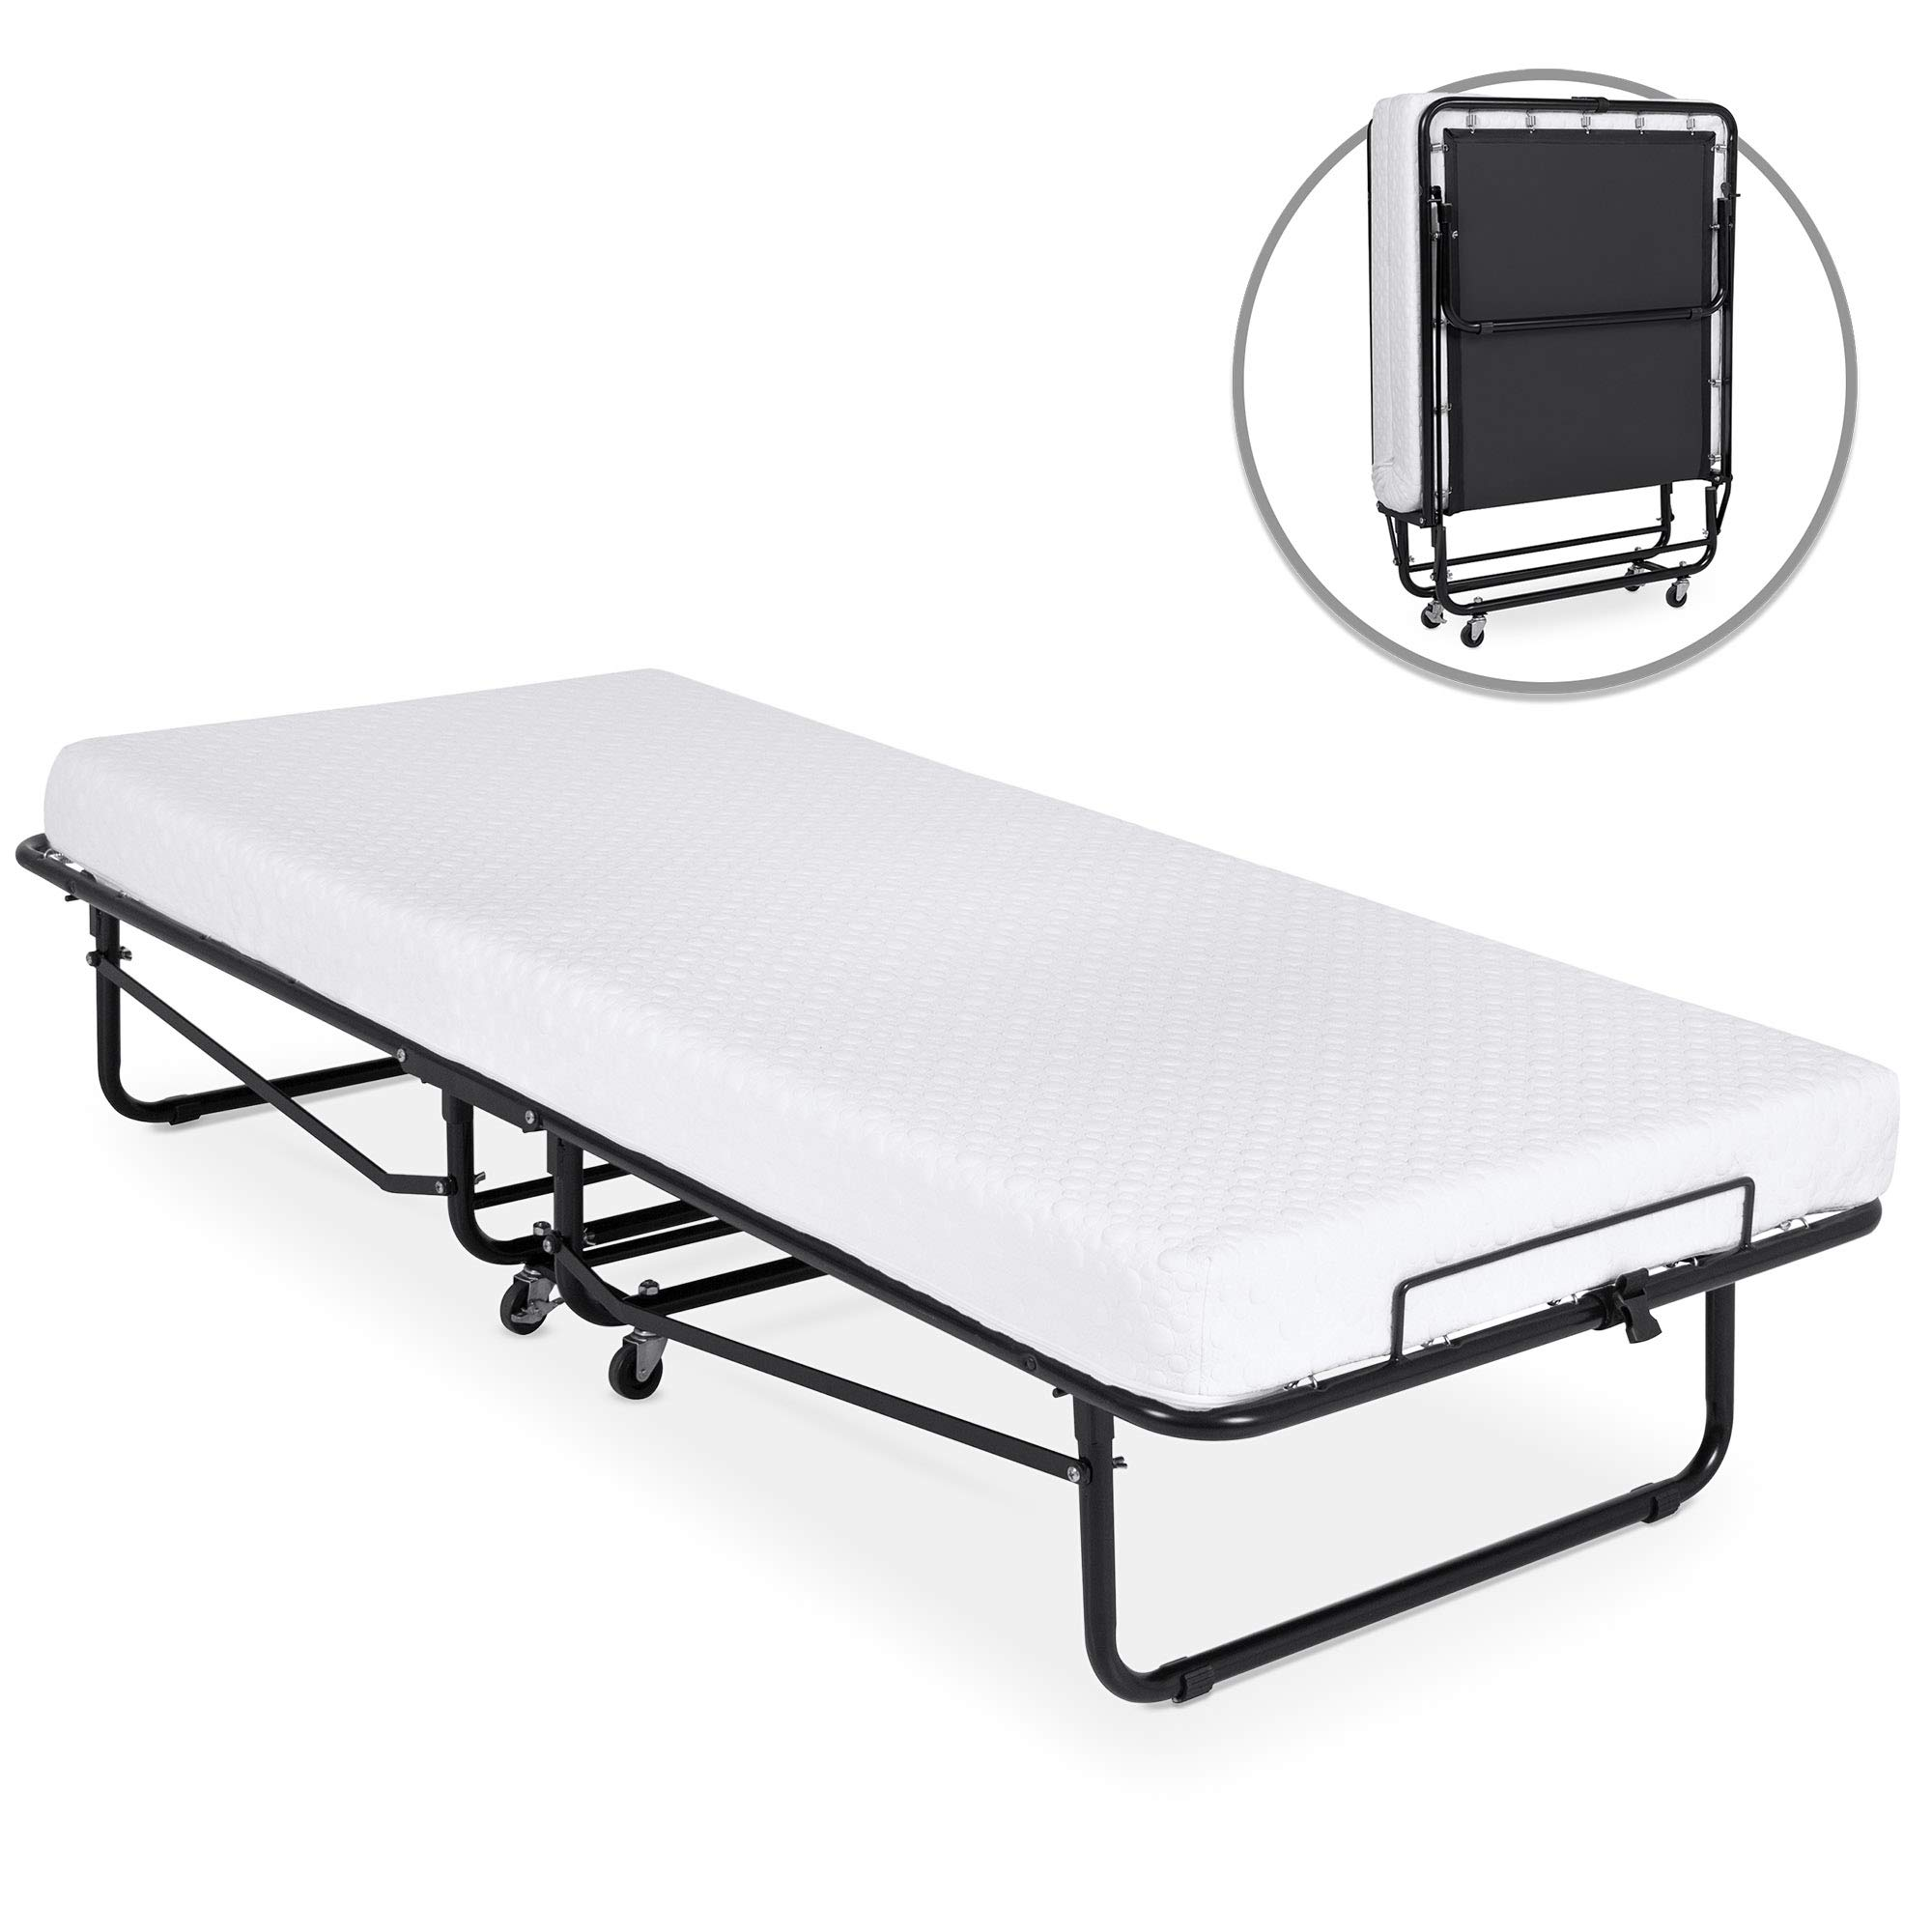 Best Choice Products Folding Rollaway Cot-Sized Mattress Guest Bed w/ 3in Memory Foam, Locking Wheels. Steel Frame, Black by Best Choice Products